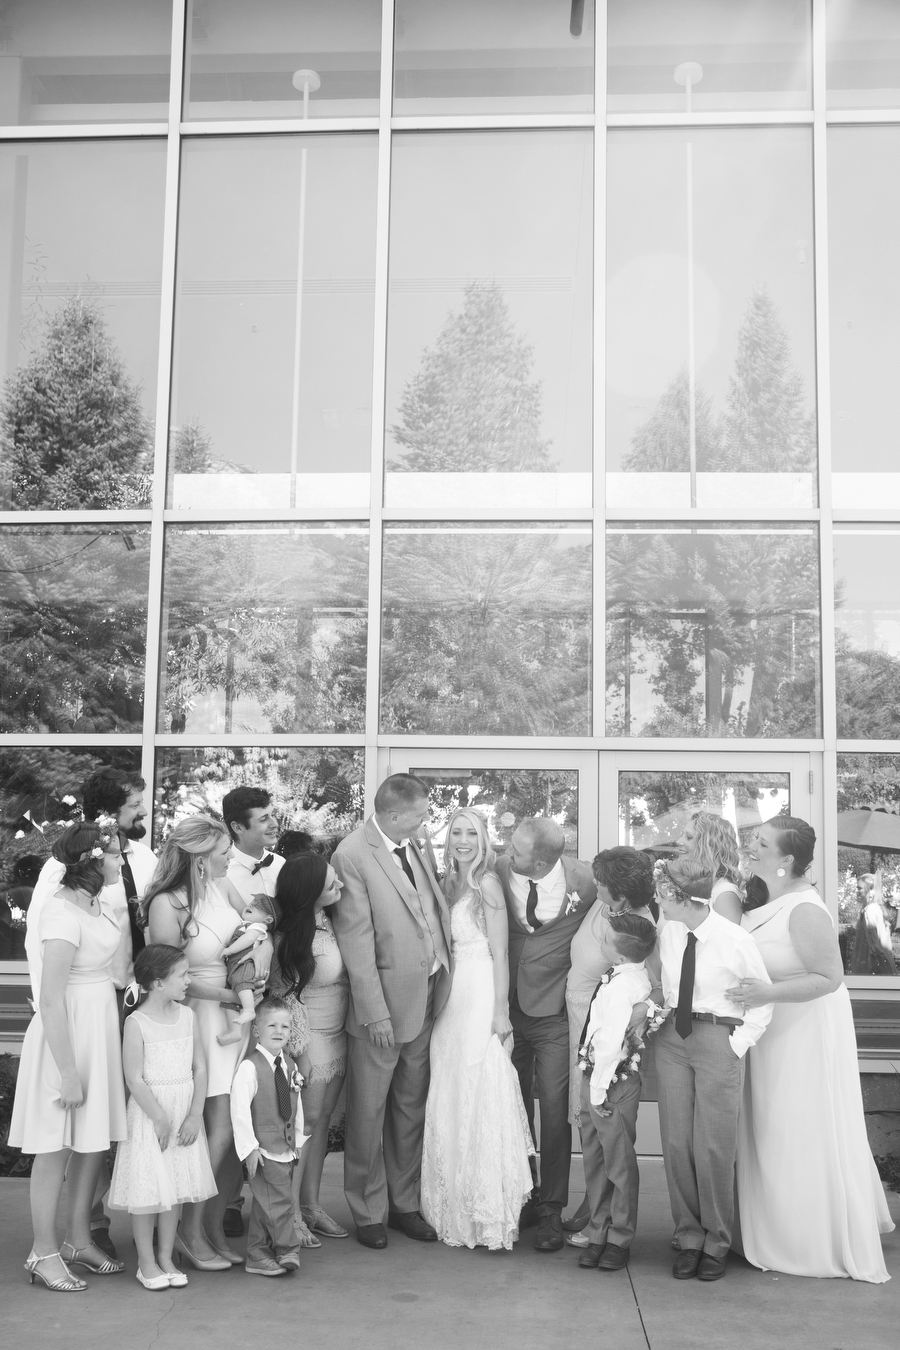 MARIACORONAPHOTOGRAPHY_WEDDING_UTAH_0204.JPG